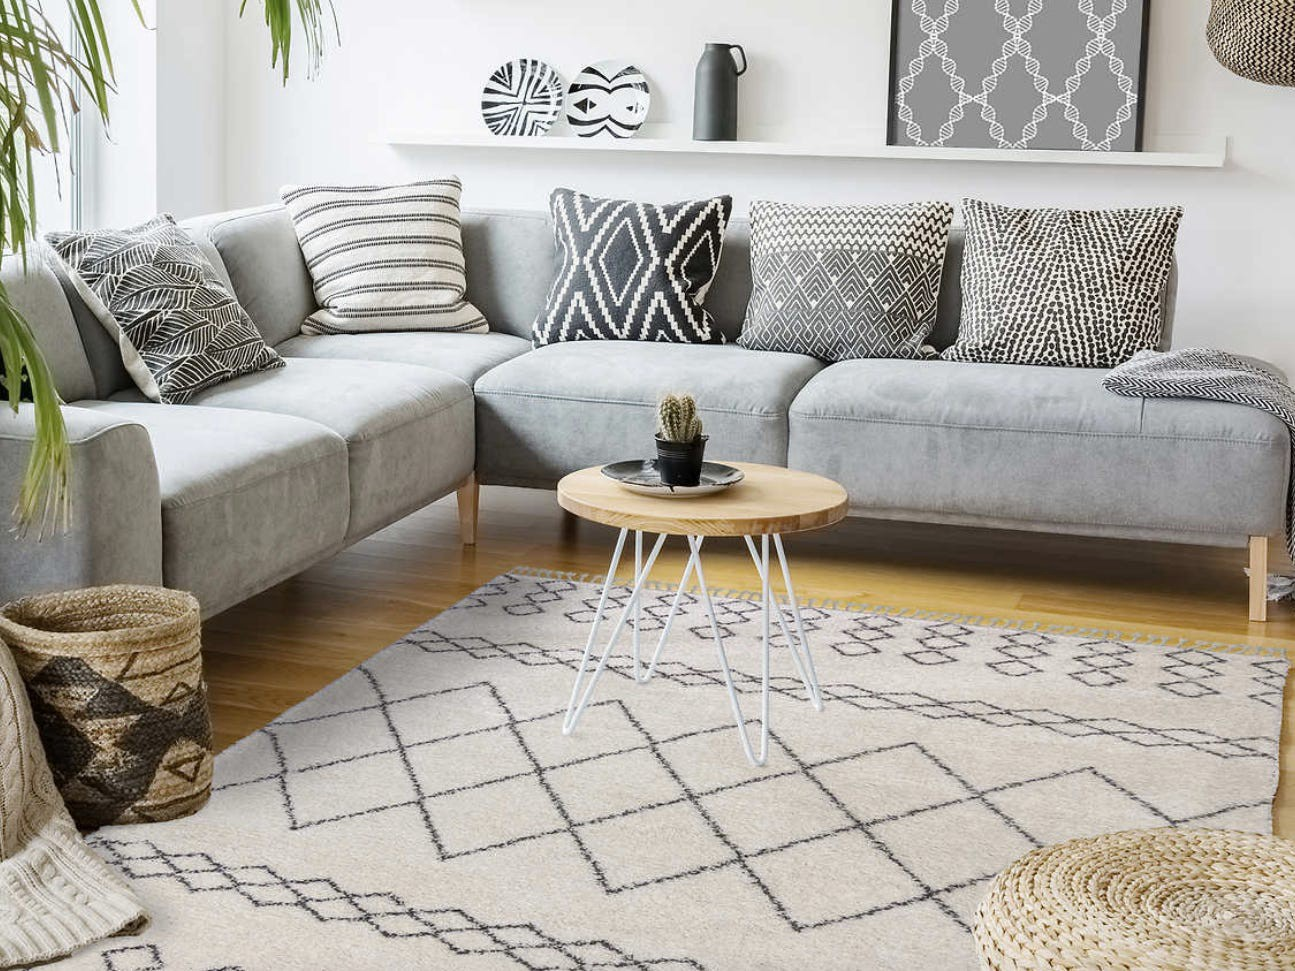 A couch and a rug.